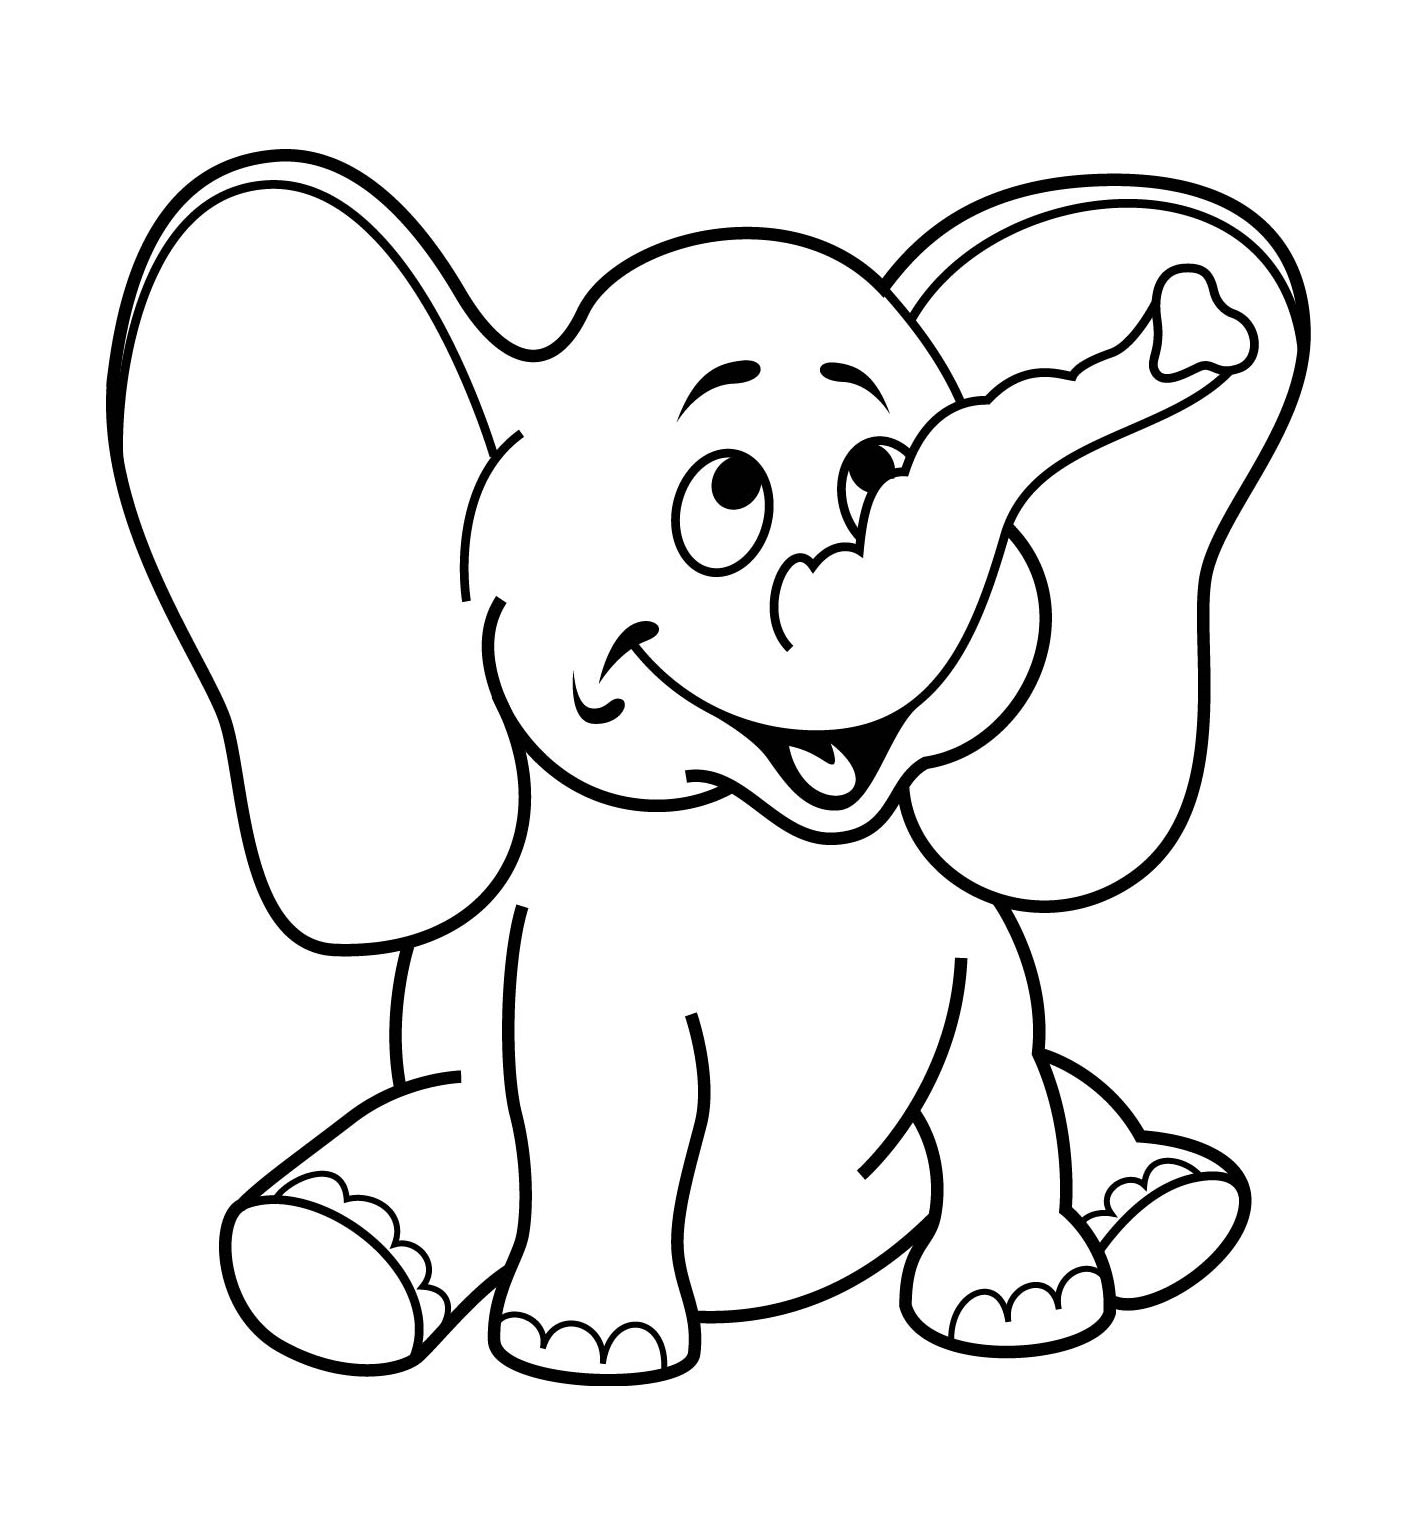 Coloring pages for 3-4 year old girls, 3,4 years, nursery ...